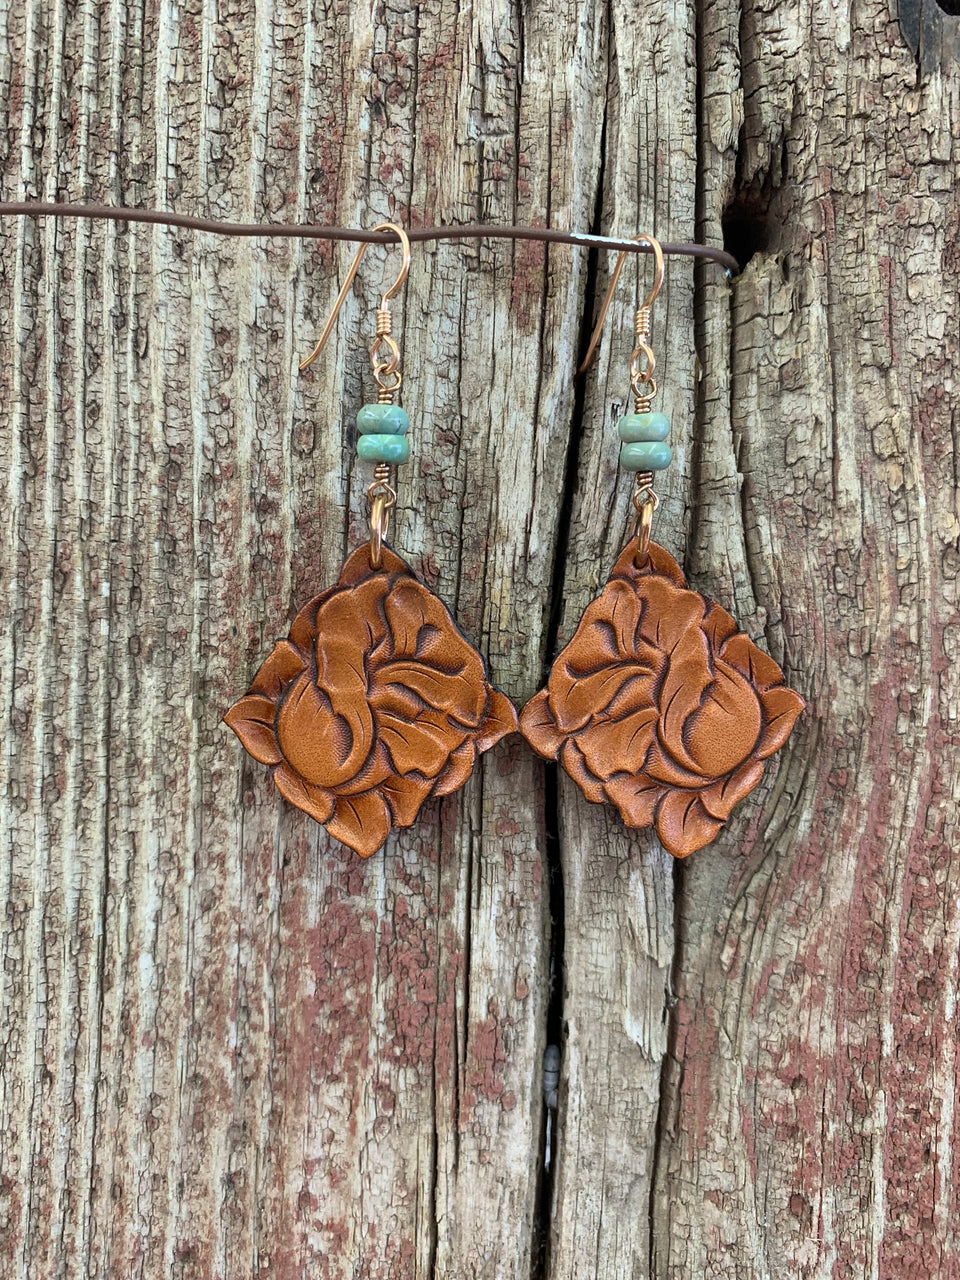 J.Forks Designs Hand Tooled Leather Side Drop Rose Earrings with Turquoise